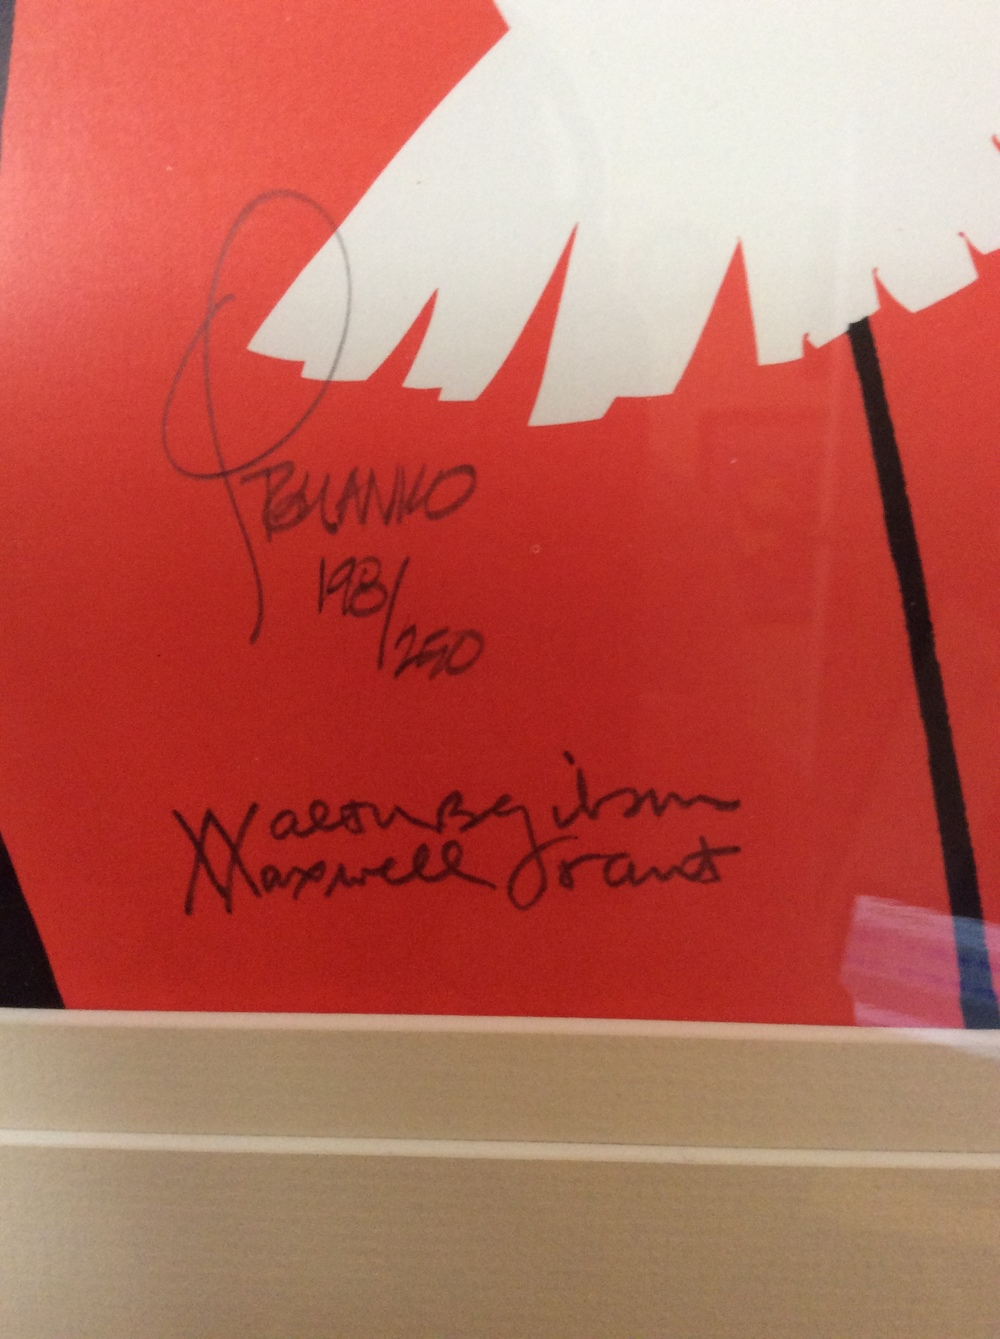 Close-Up of Signatures on the Norgil Poster